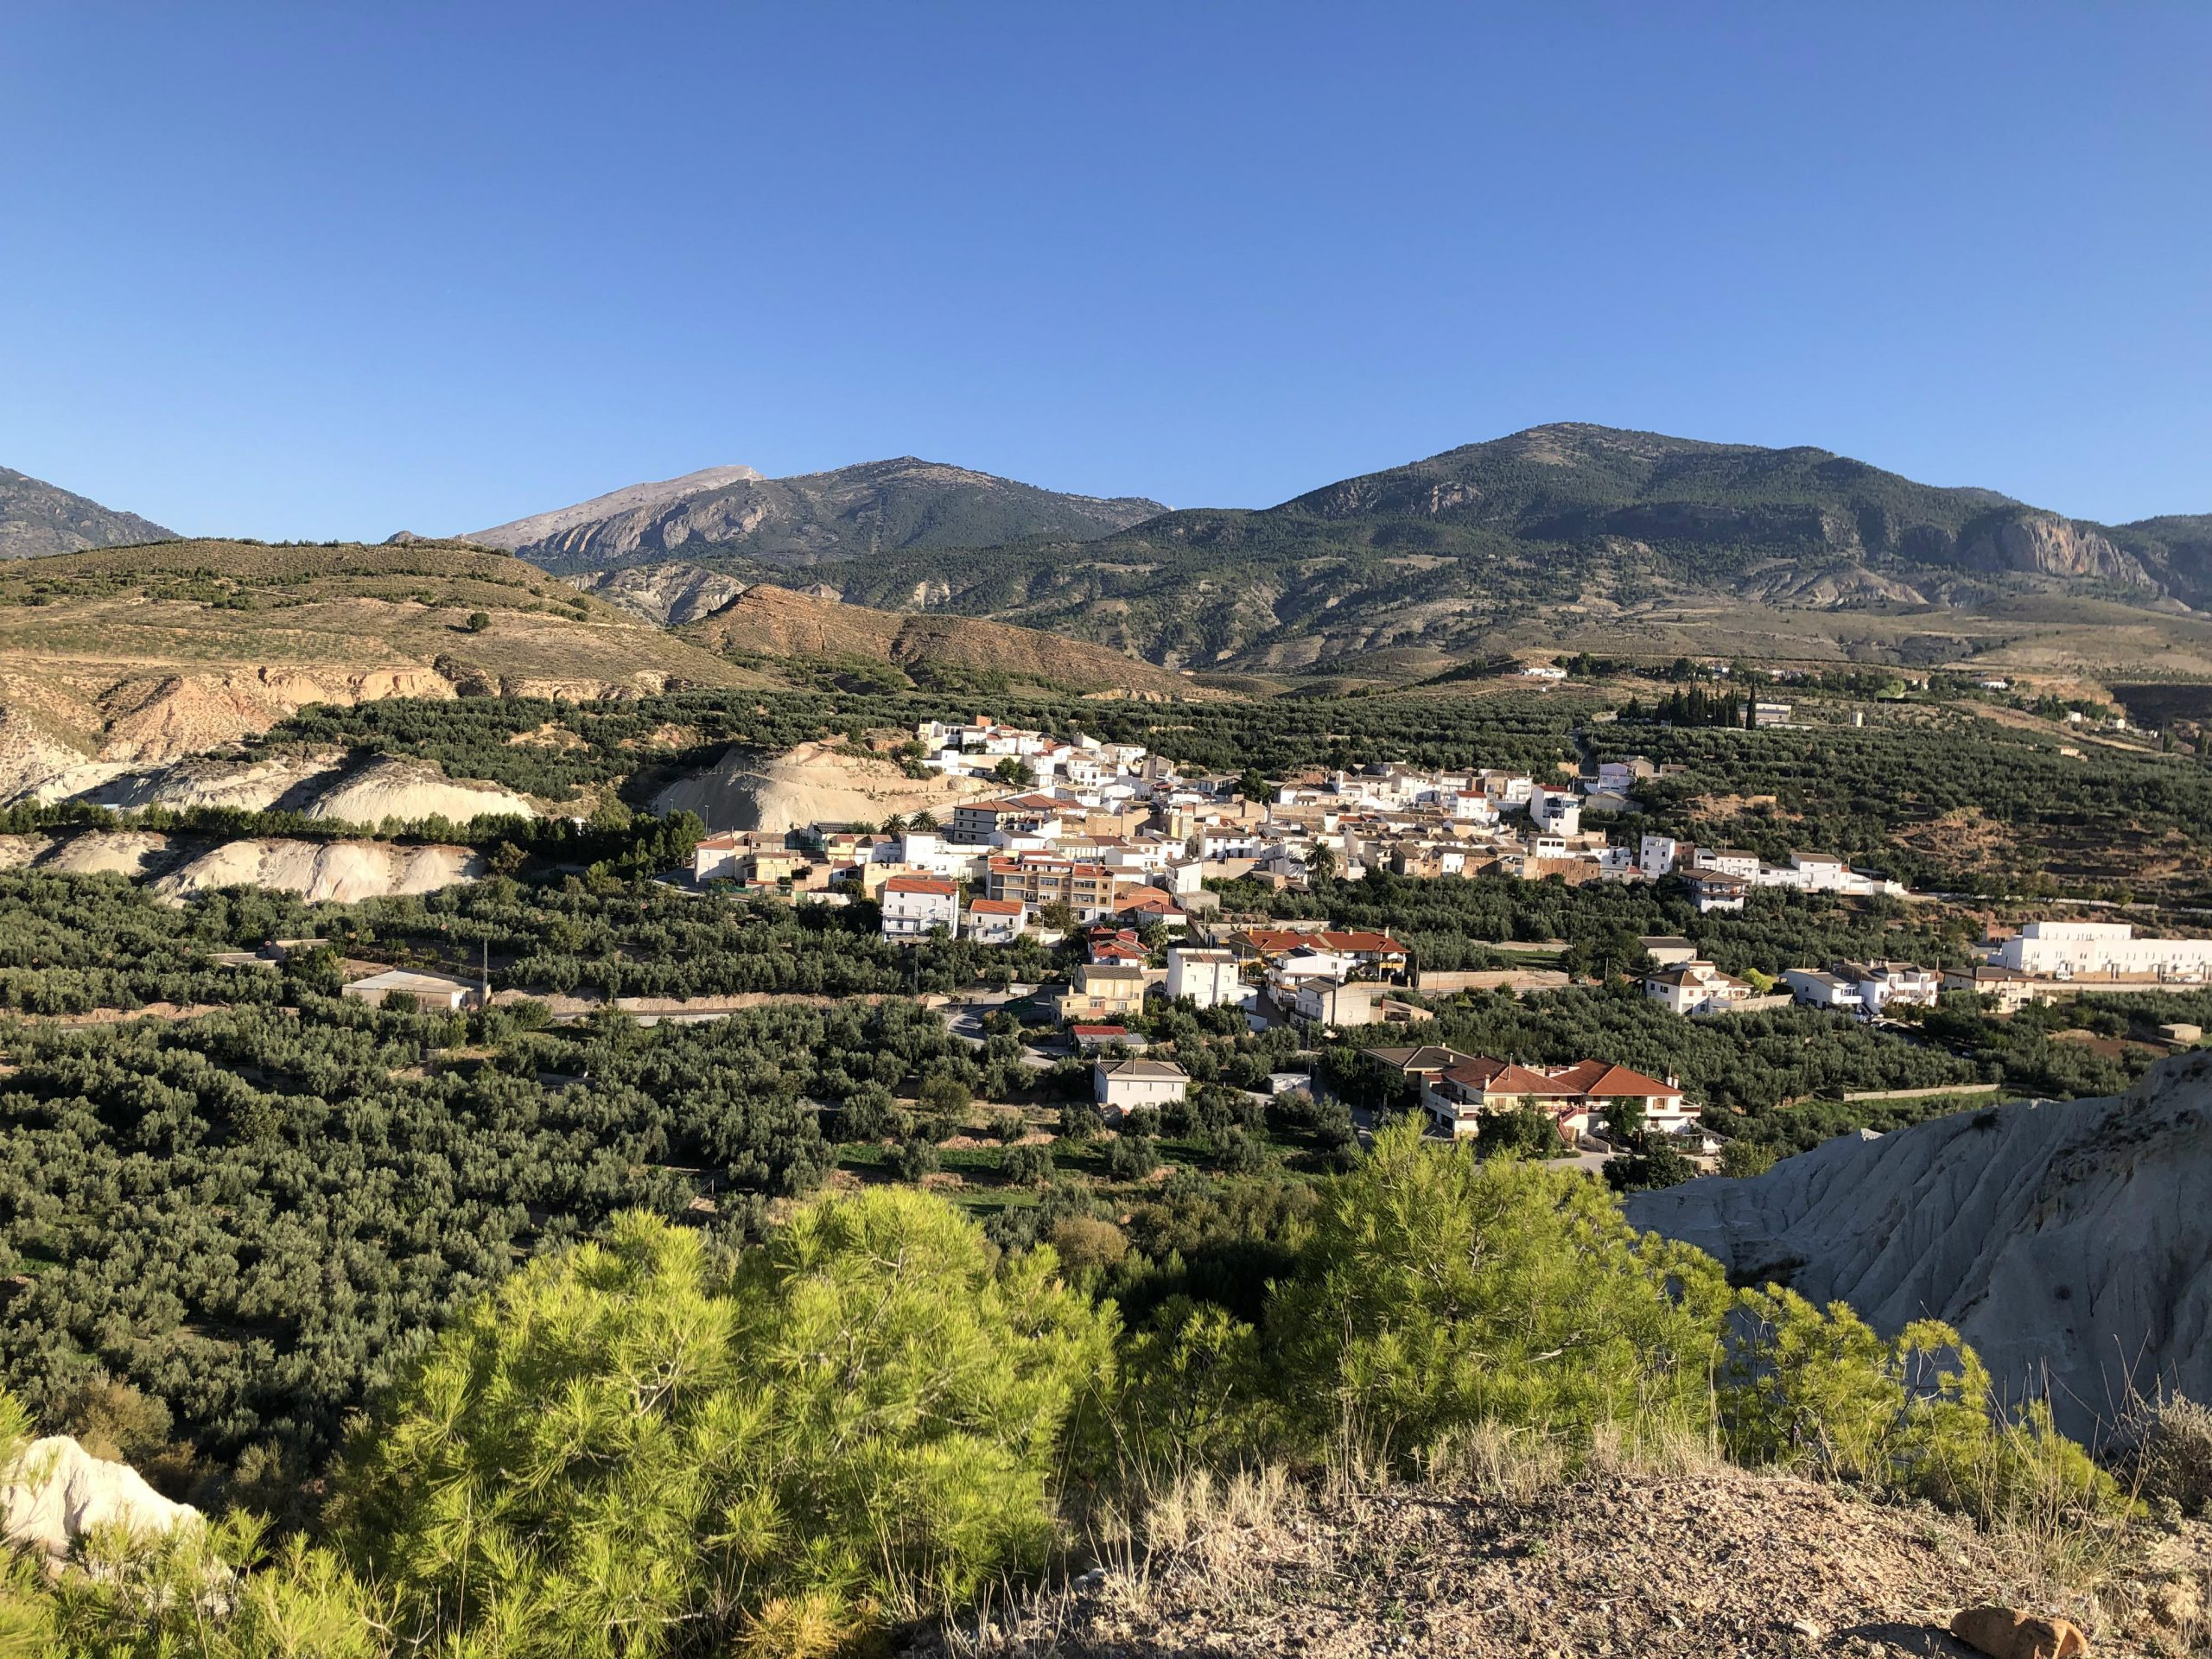 Village in the middle of olive groves and badlands in our Spanish landscape. Photo: Erica ten Broeke.